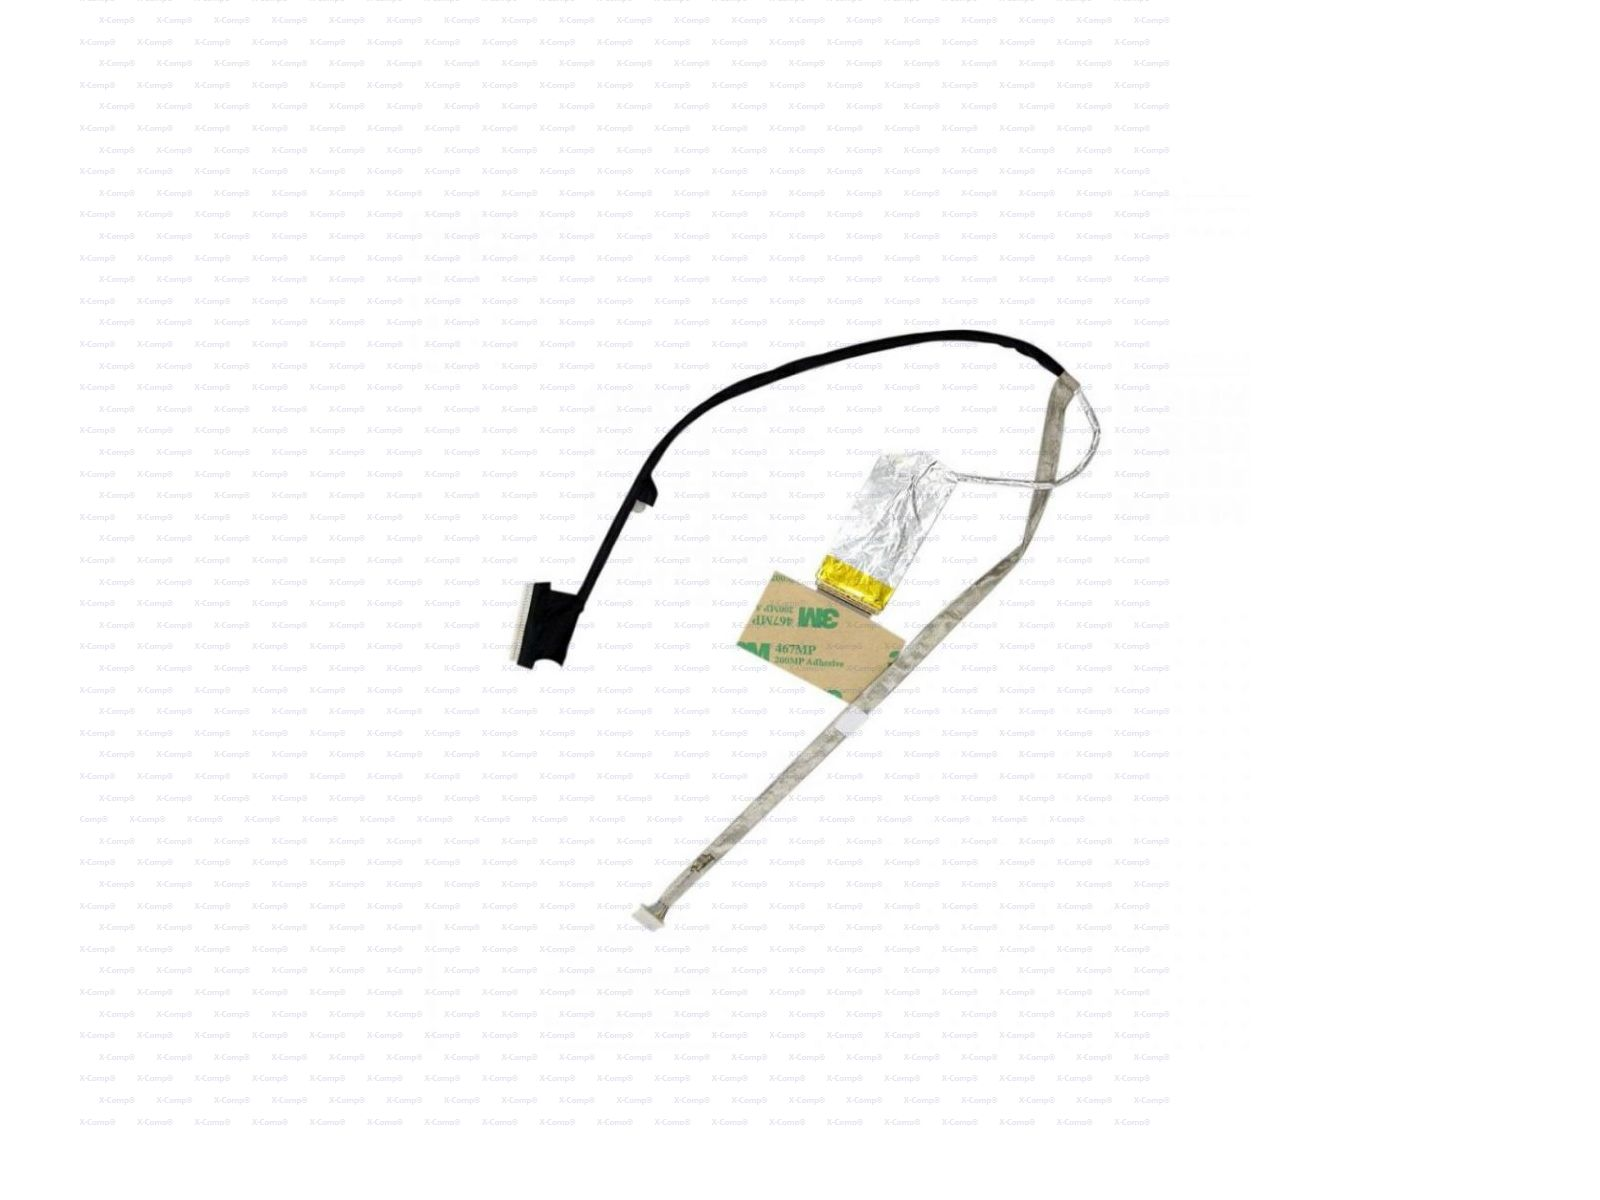 Display LCD Flex Video Kabel 350404R00-G62-G für HP ProBook 6570b-B6P78ET